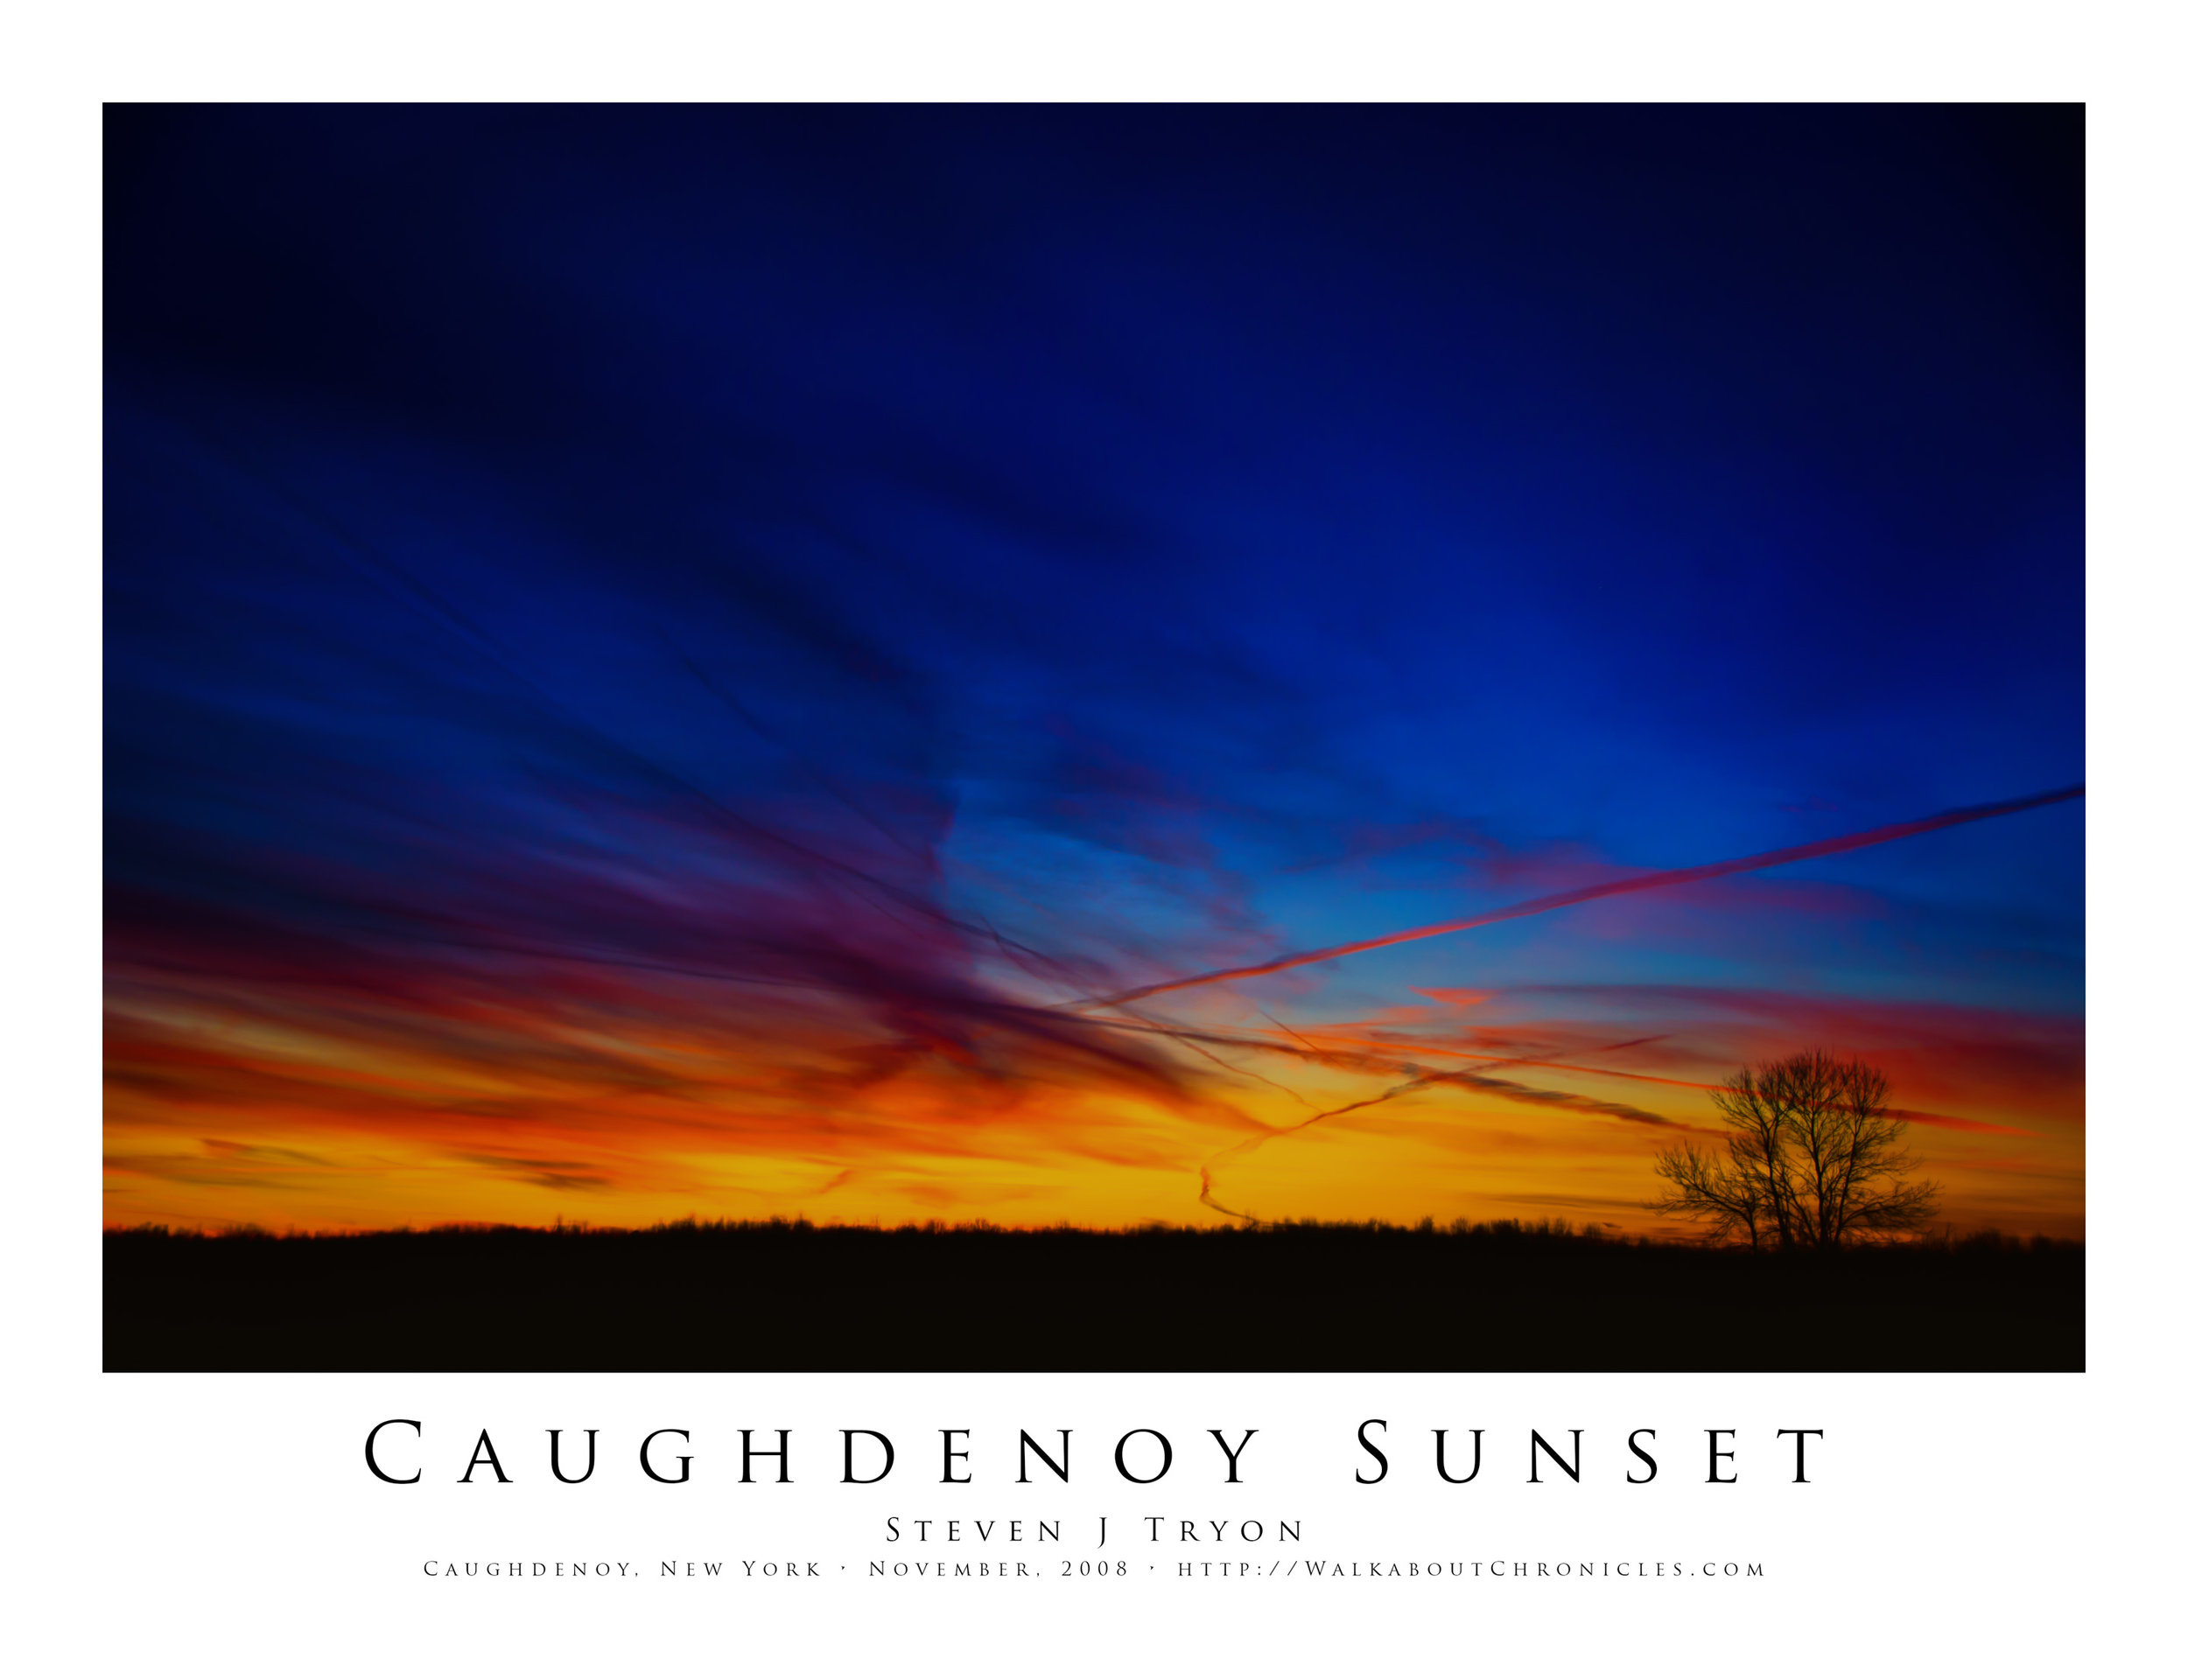 Caughdenoy Sunset (Revisited)